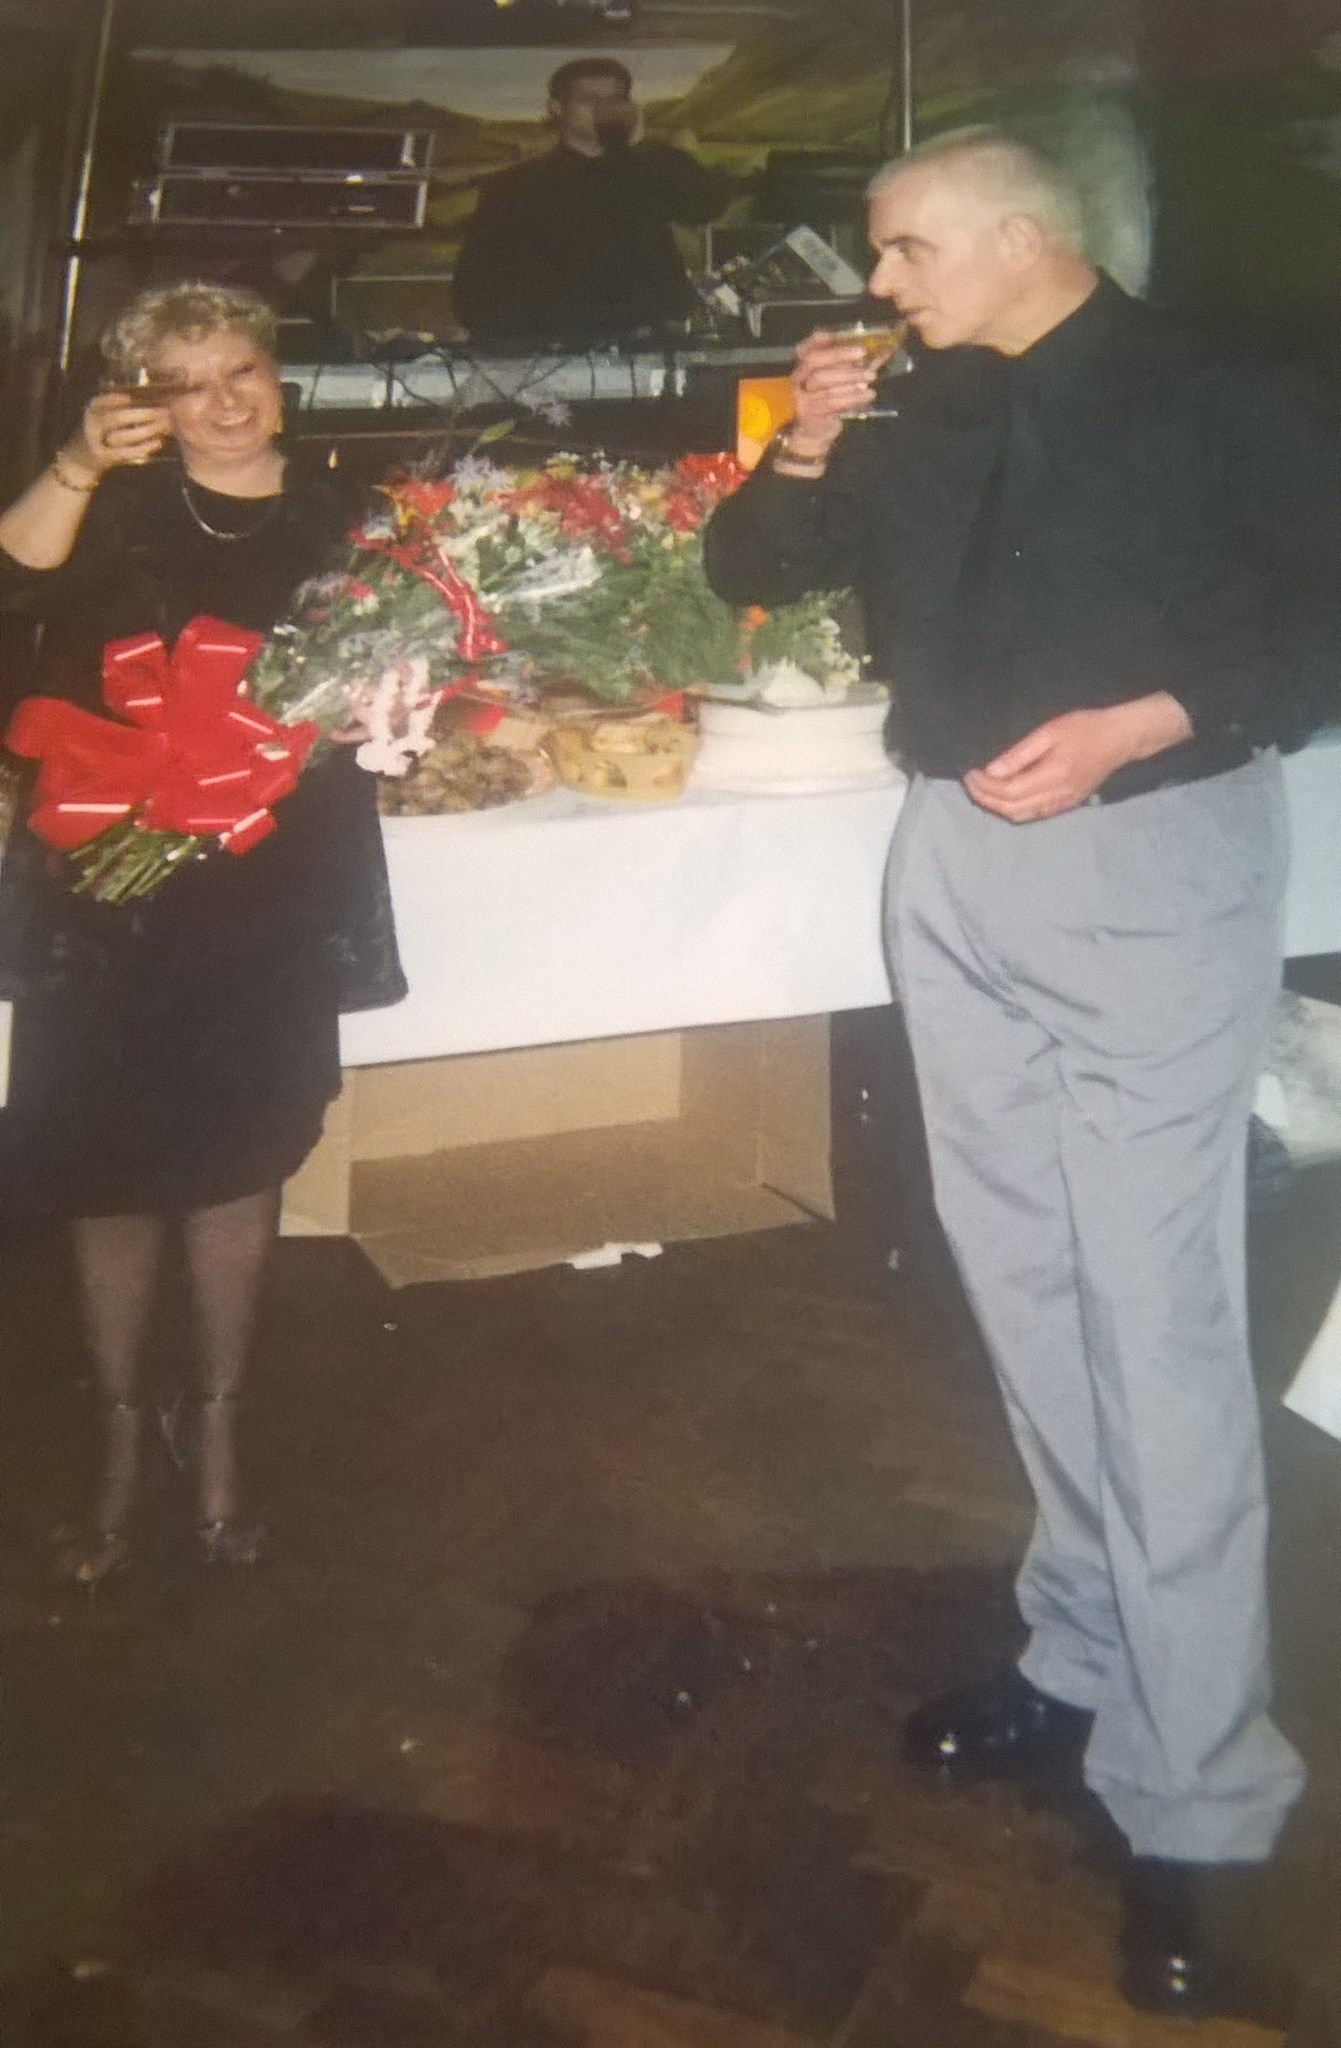 mum and dad's silver wedding anniversary party, surprised mum with flowers